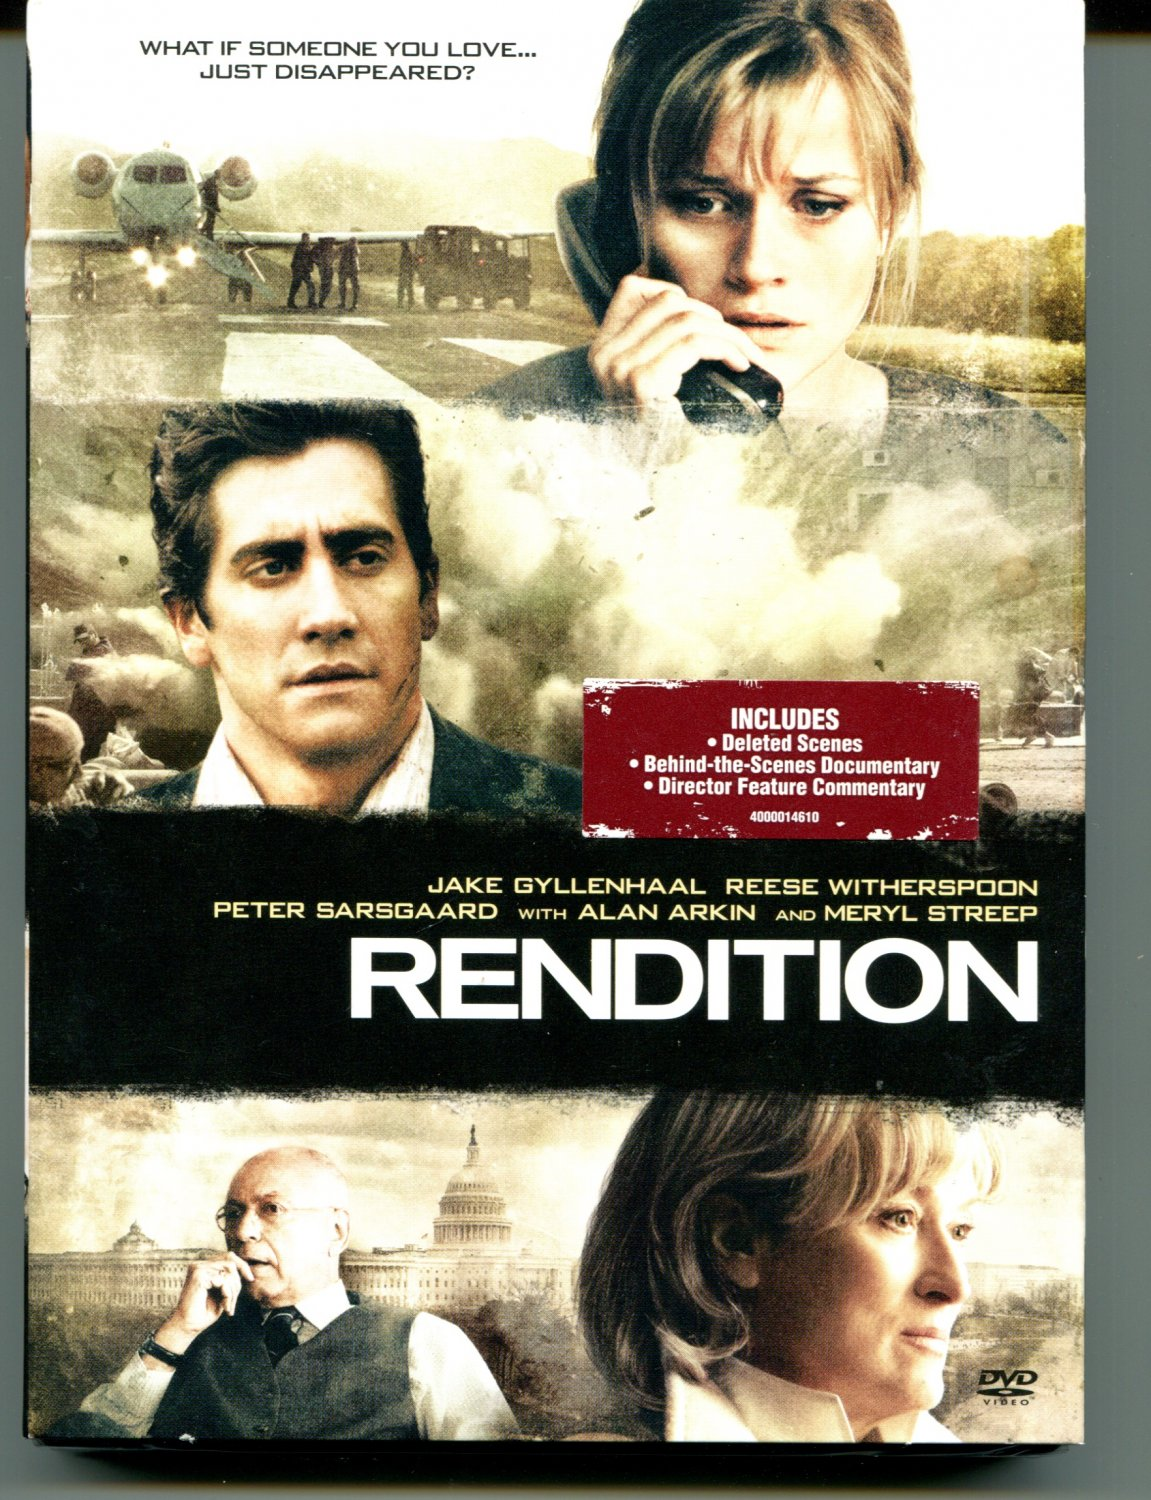 Rendition (2008)